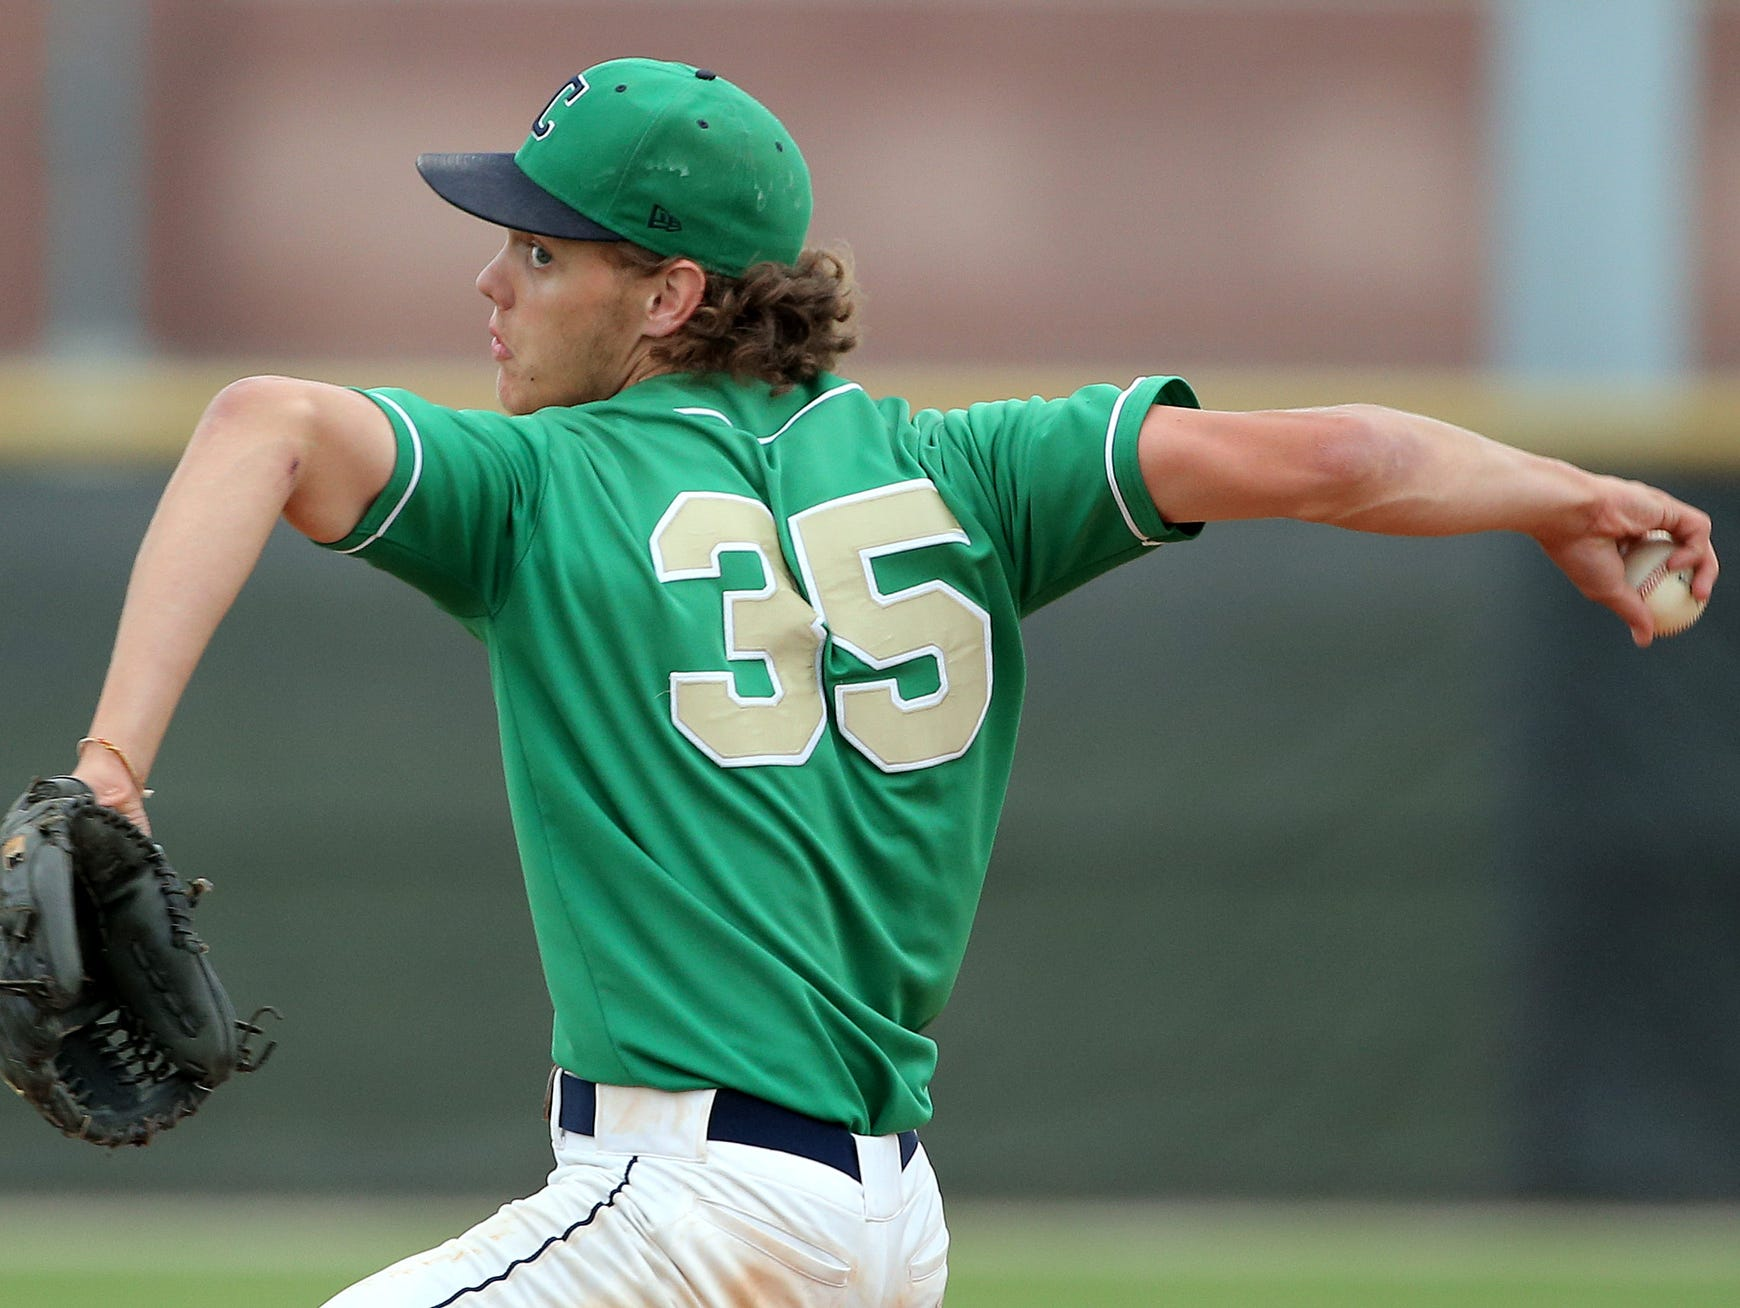 Cathedral pitcher Ashe Russell won back-to-back Gatorade Player of the Year awards.